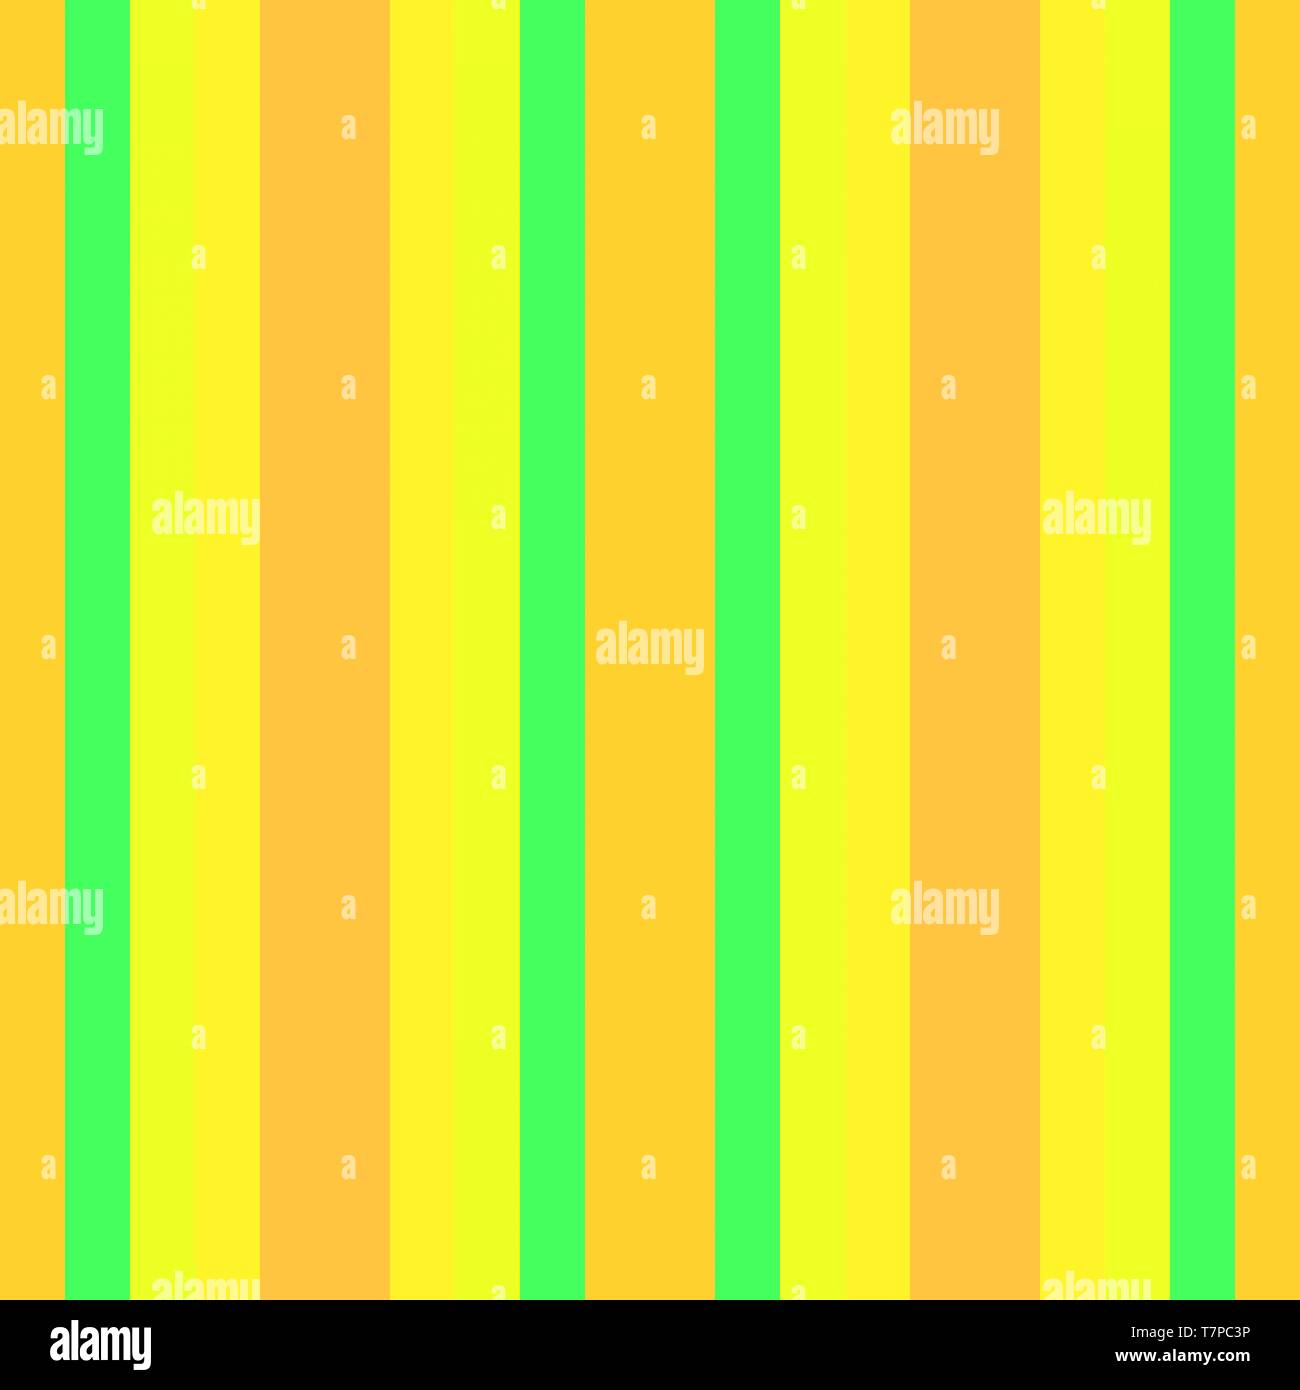 Wallpaper Pattern Vertical Lines With Yellow Vivid Lime